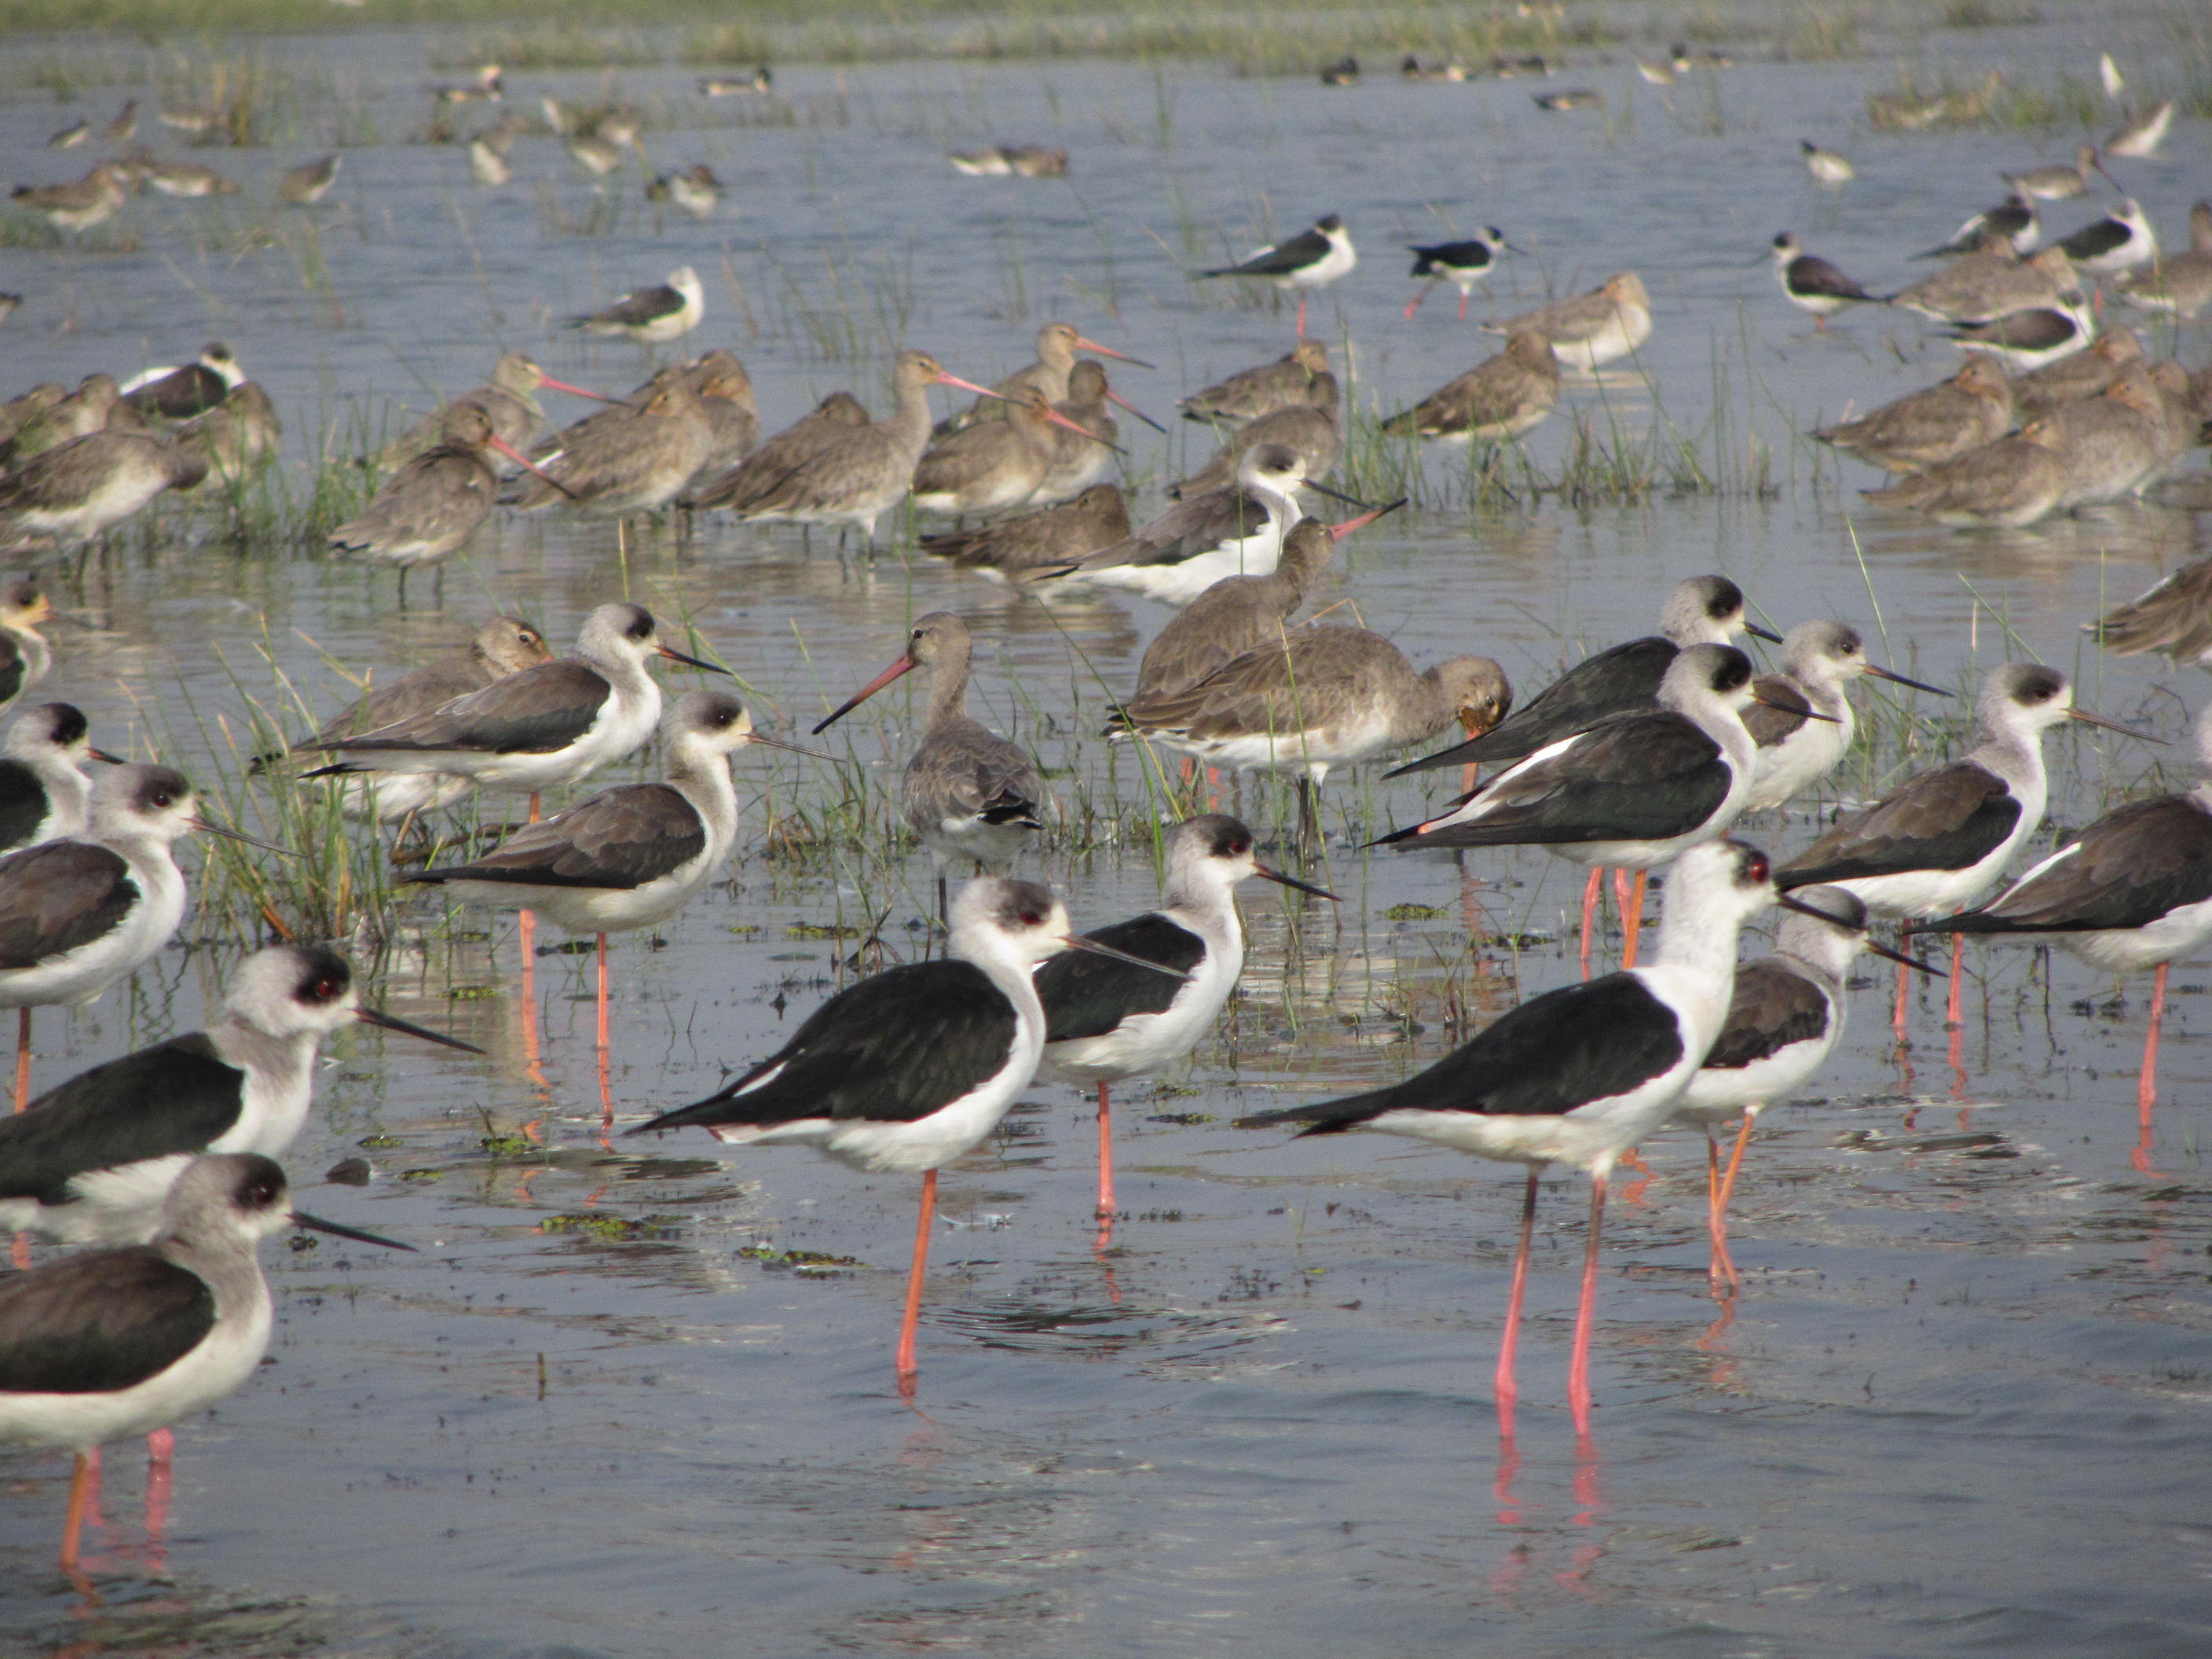 Black winged Stilt in the foreground and Godwits at the back